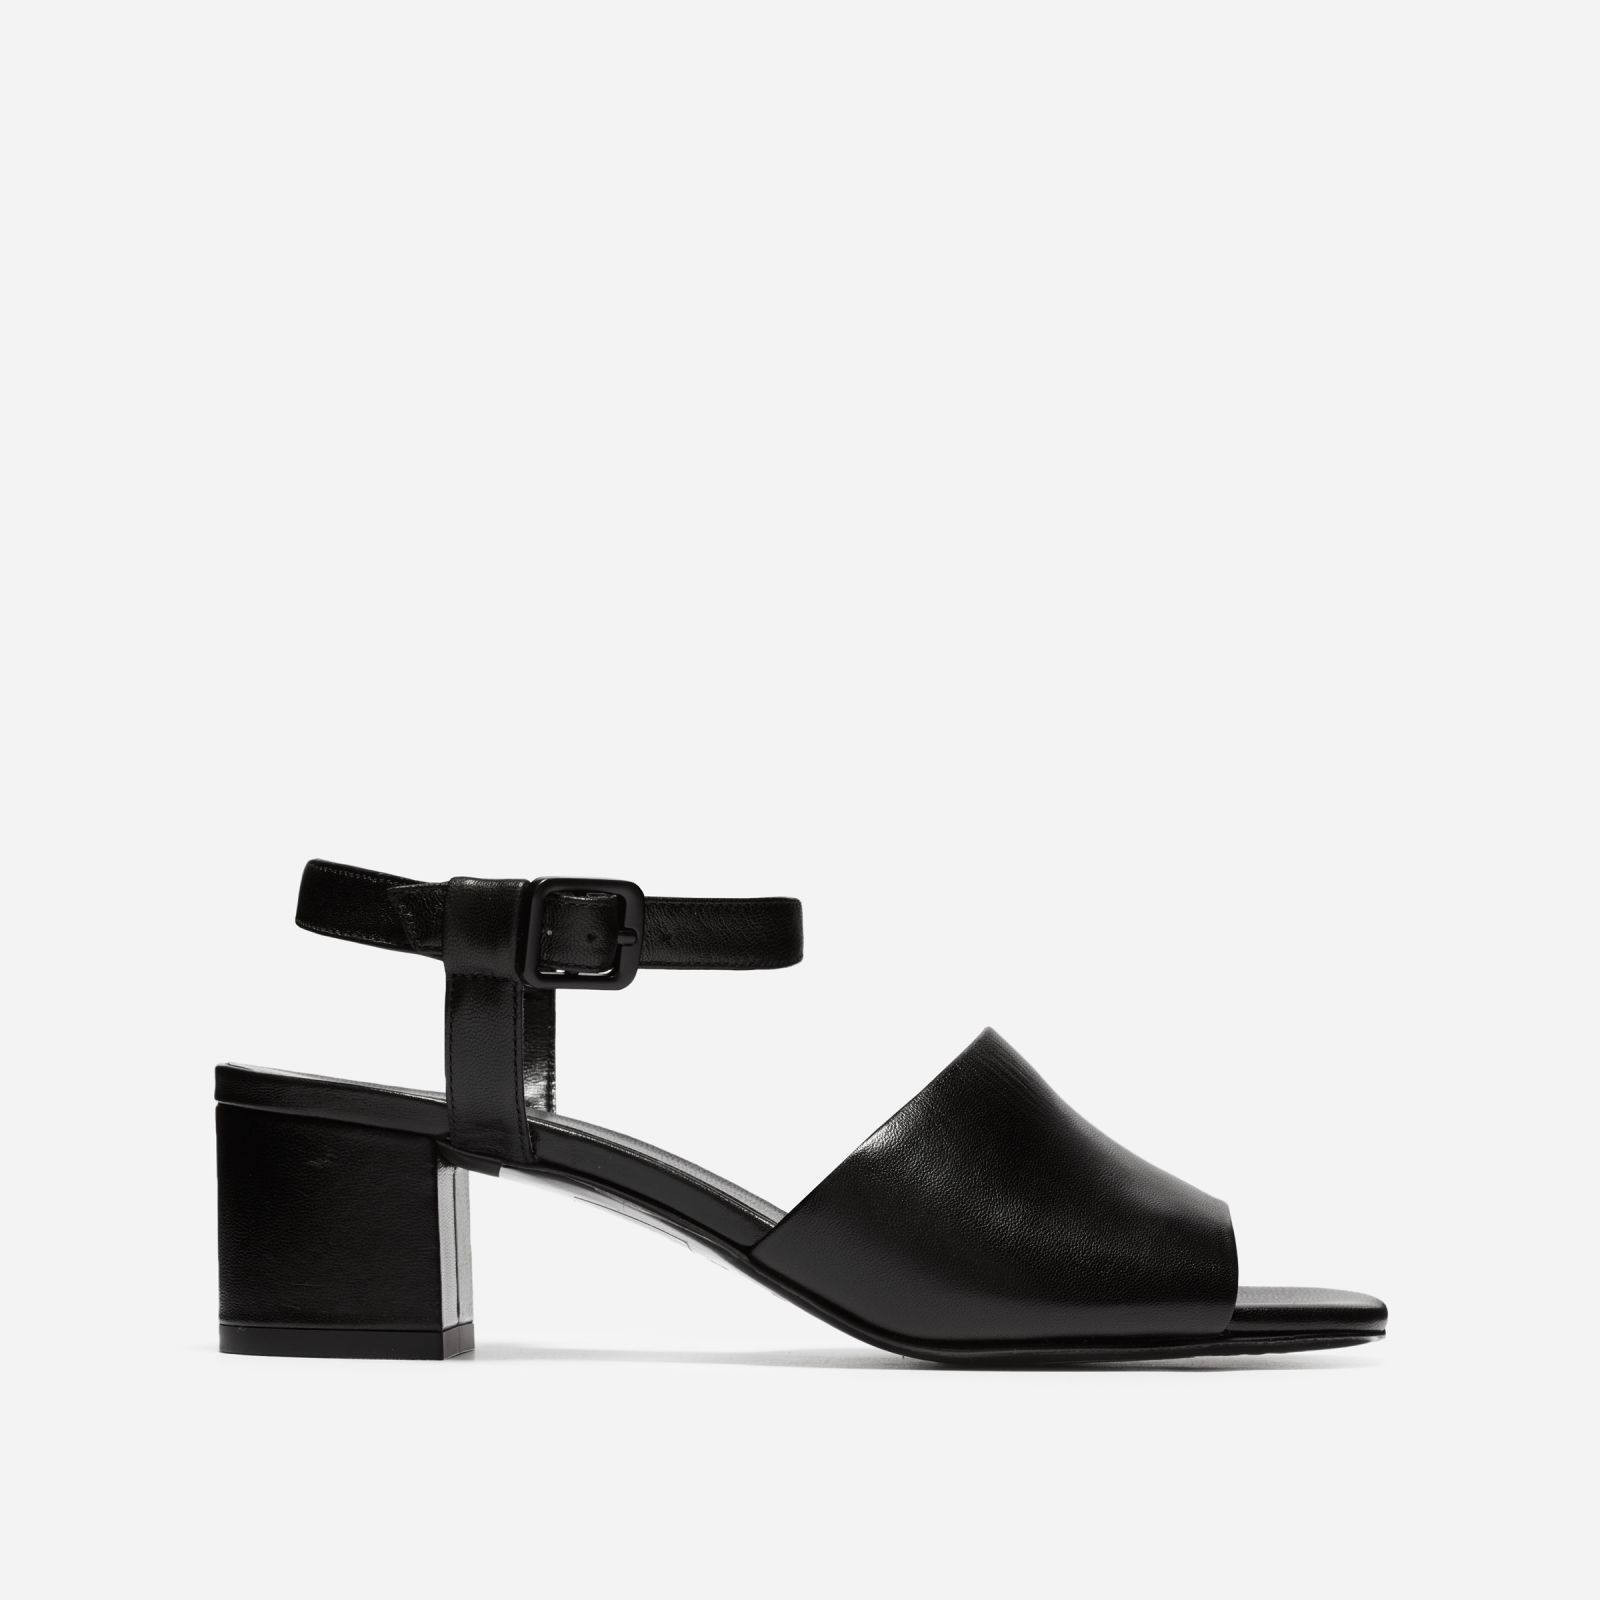 1b2db412d9a Women s Block Heel Sandal by Everlane in Black